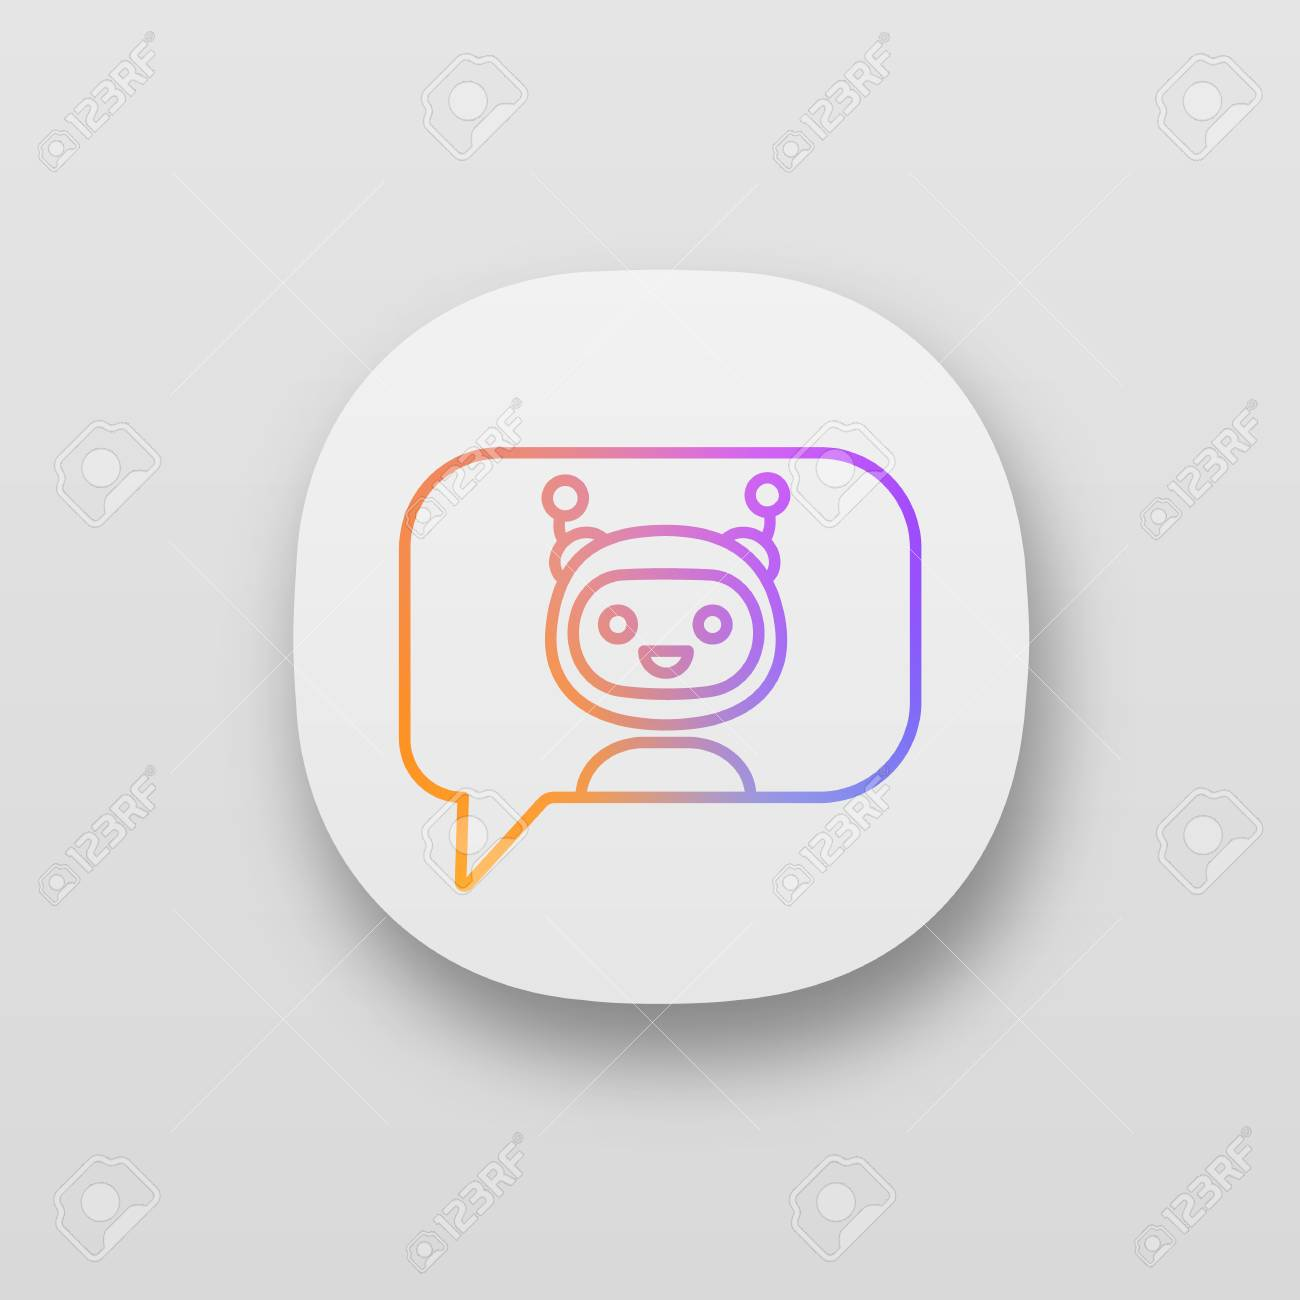 Chatbot in speech bubble app icon  UI/UX user interface  Talkbot